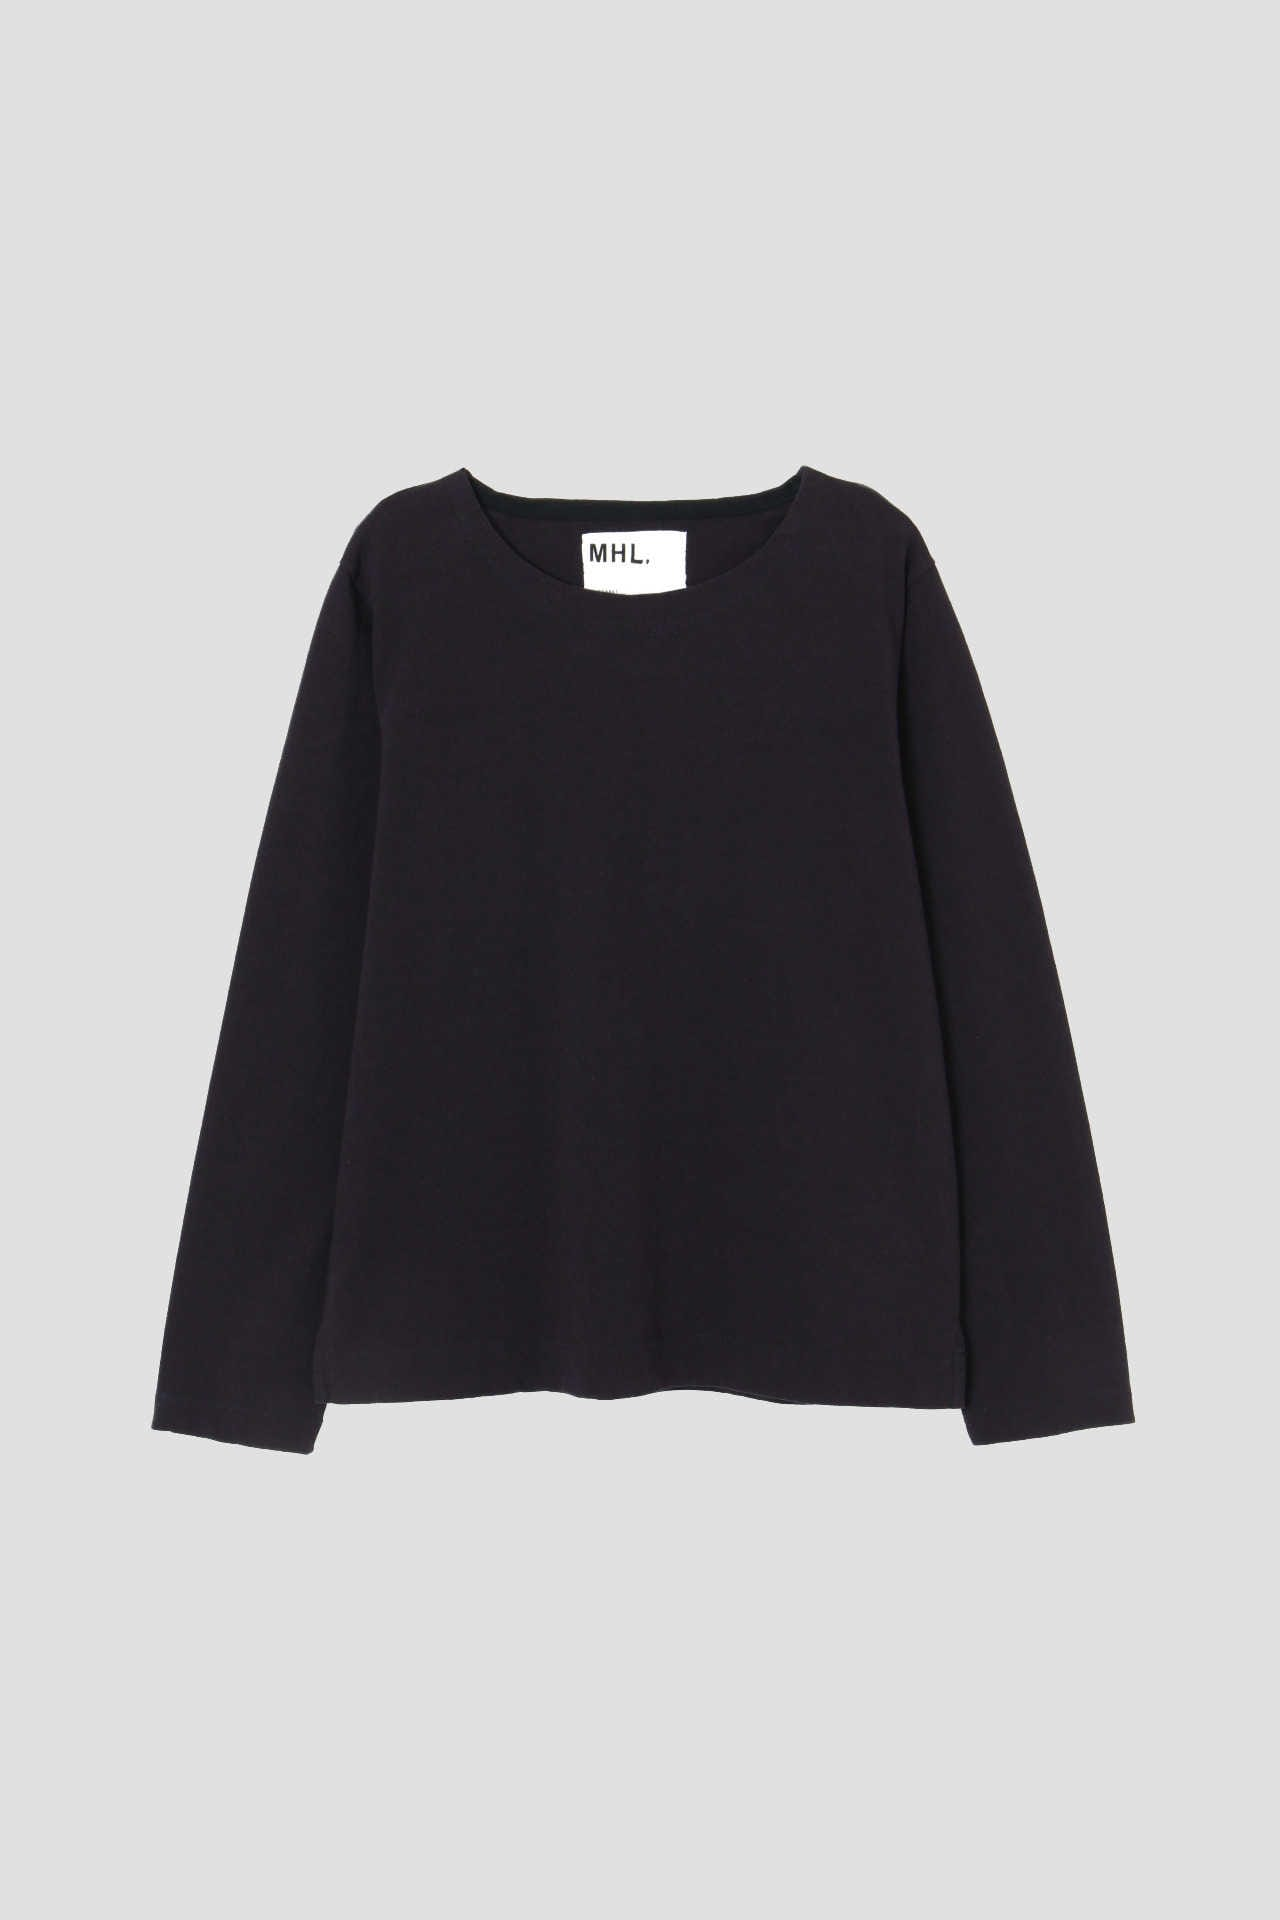 DRY COTTON JERSEY11